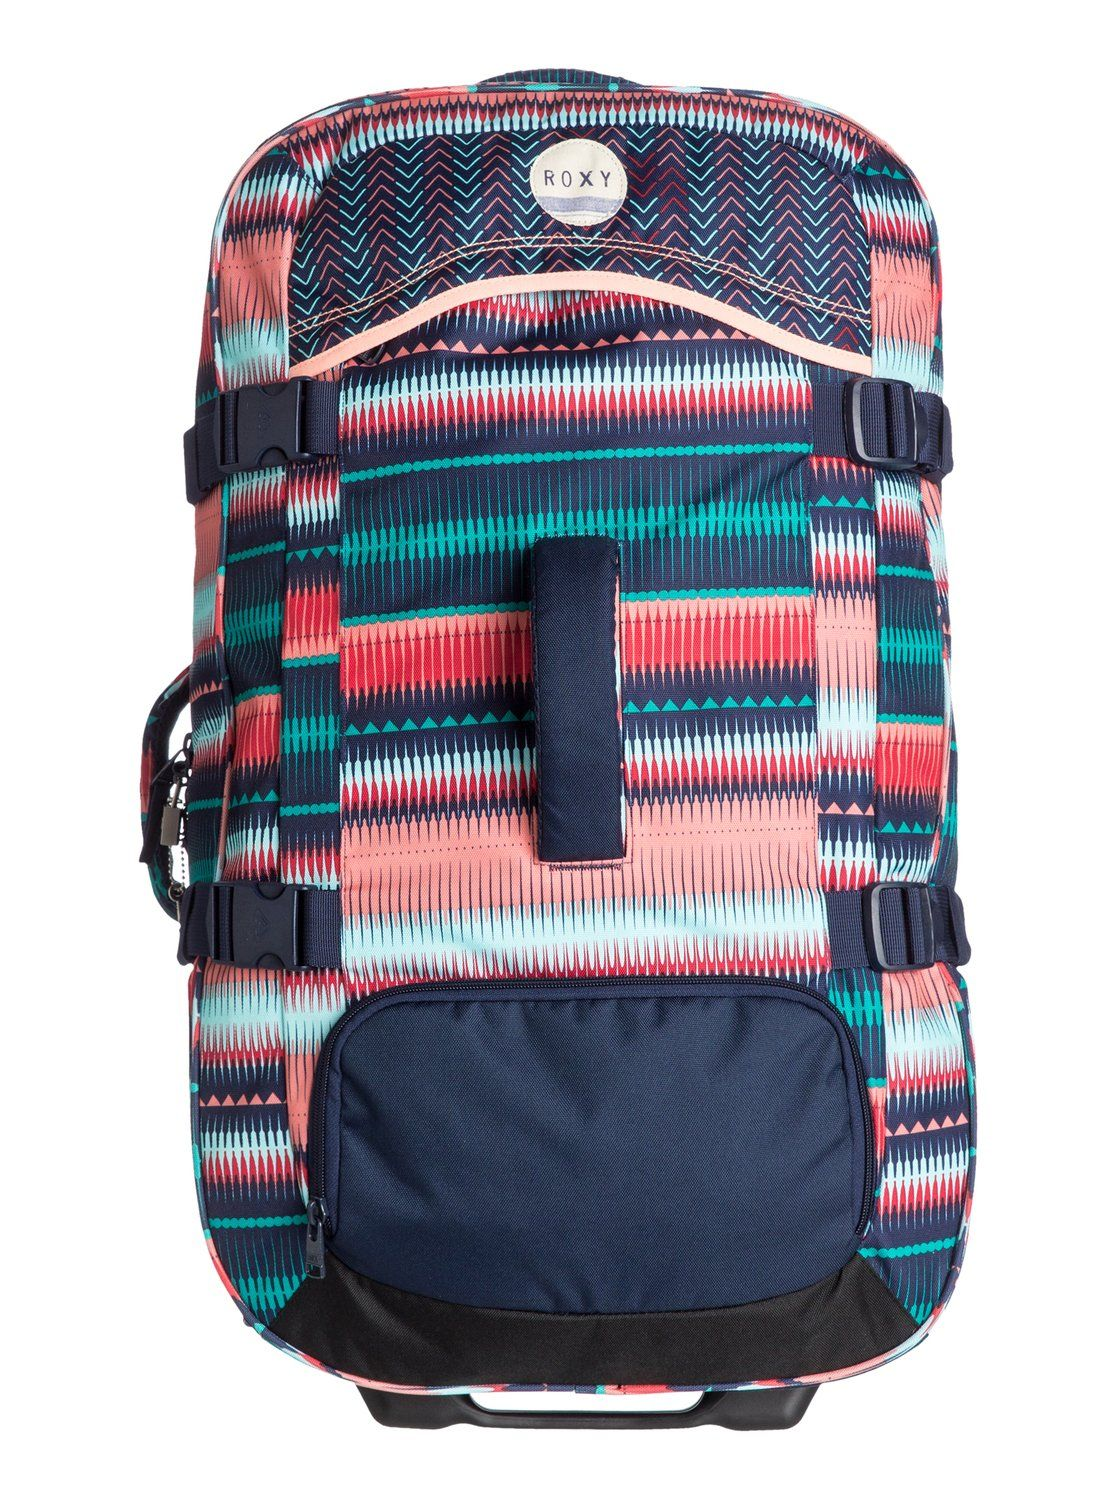 730db689d roxy, In The Clouds - Large Rolling Suitcase, 6537 JAGGED STRIPE GPF3 (gpf6)